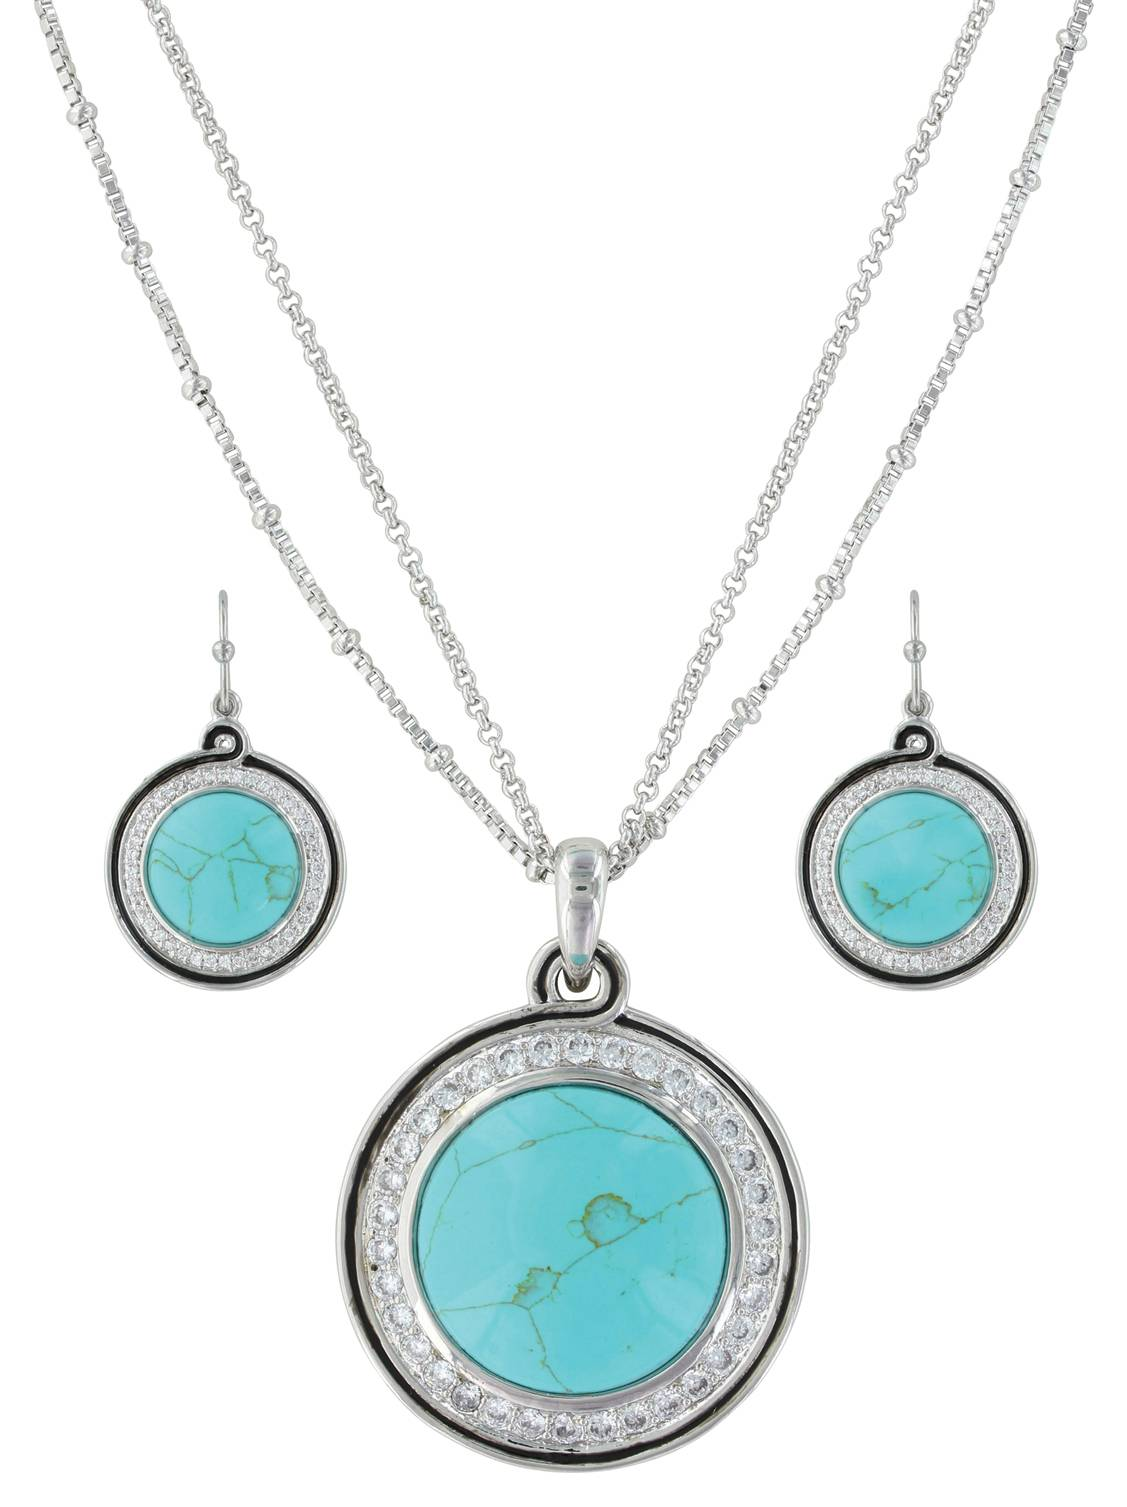 Montana Silversmiths Classic Turquoise Medallion Jewelry Set